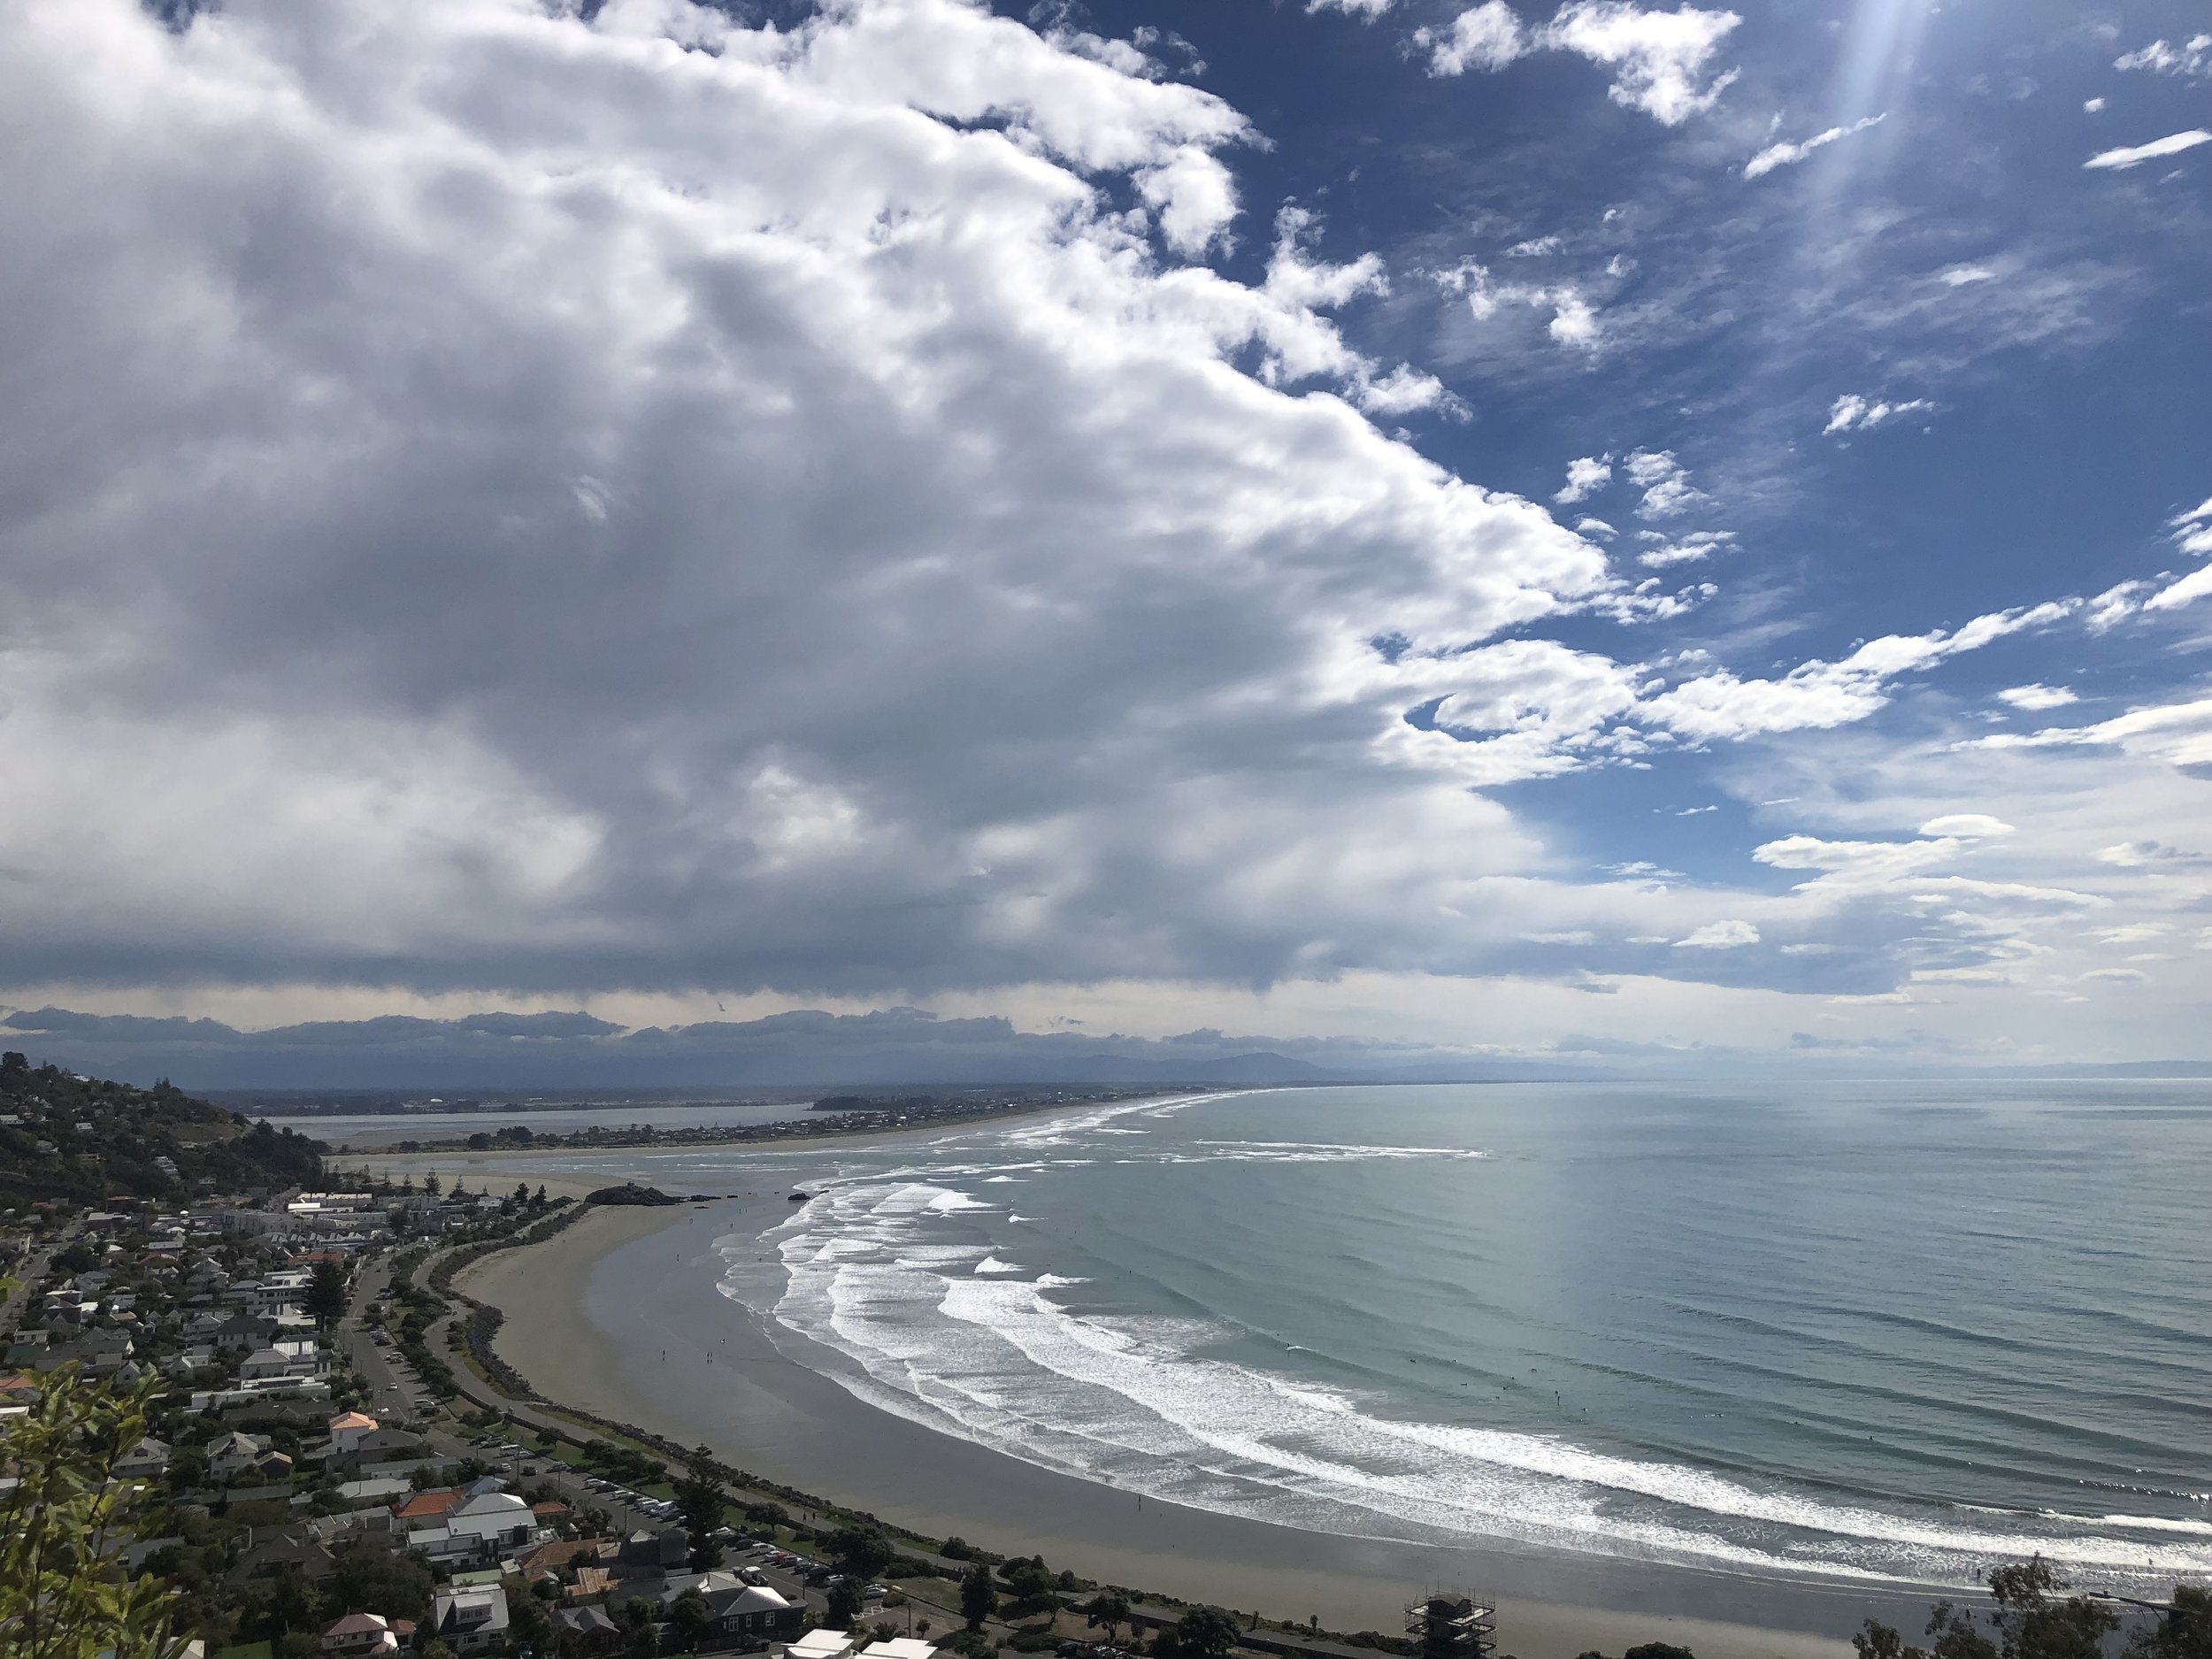 View overlooking Scraborough Beach, Sumner, Christchurch photo by Sunstone